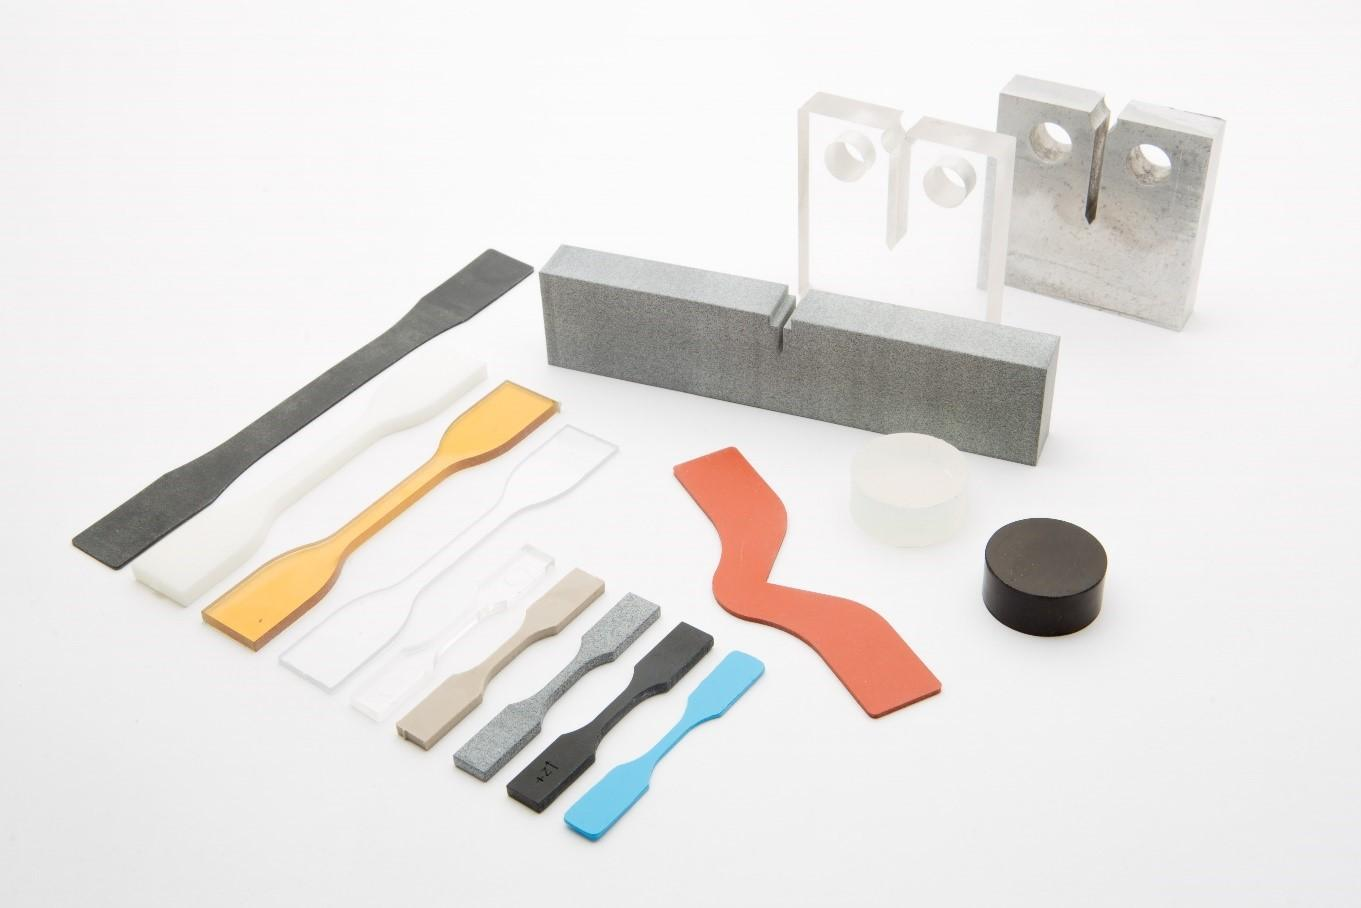 Specimen Preparation Tools